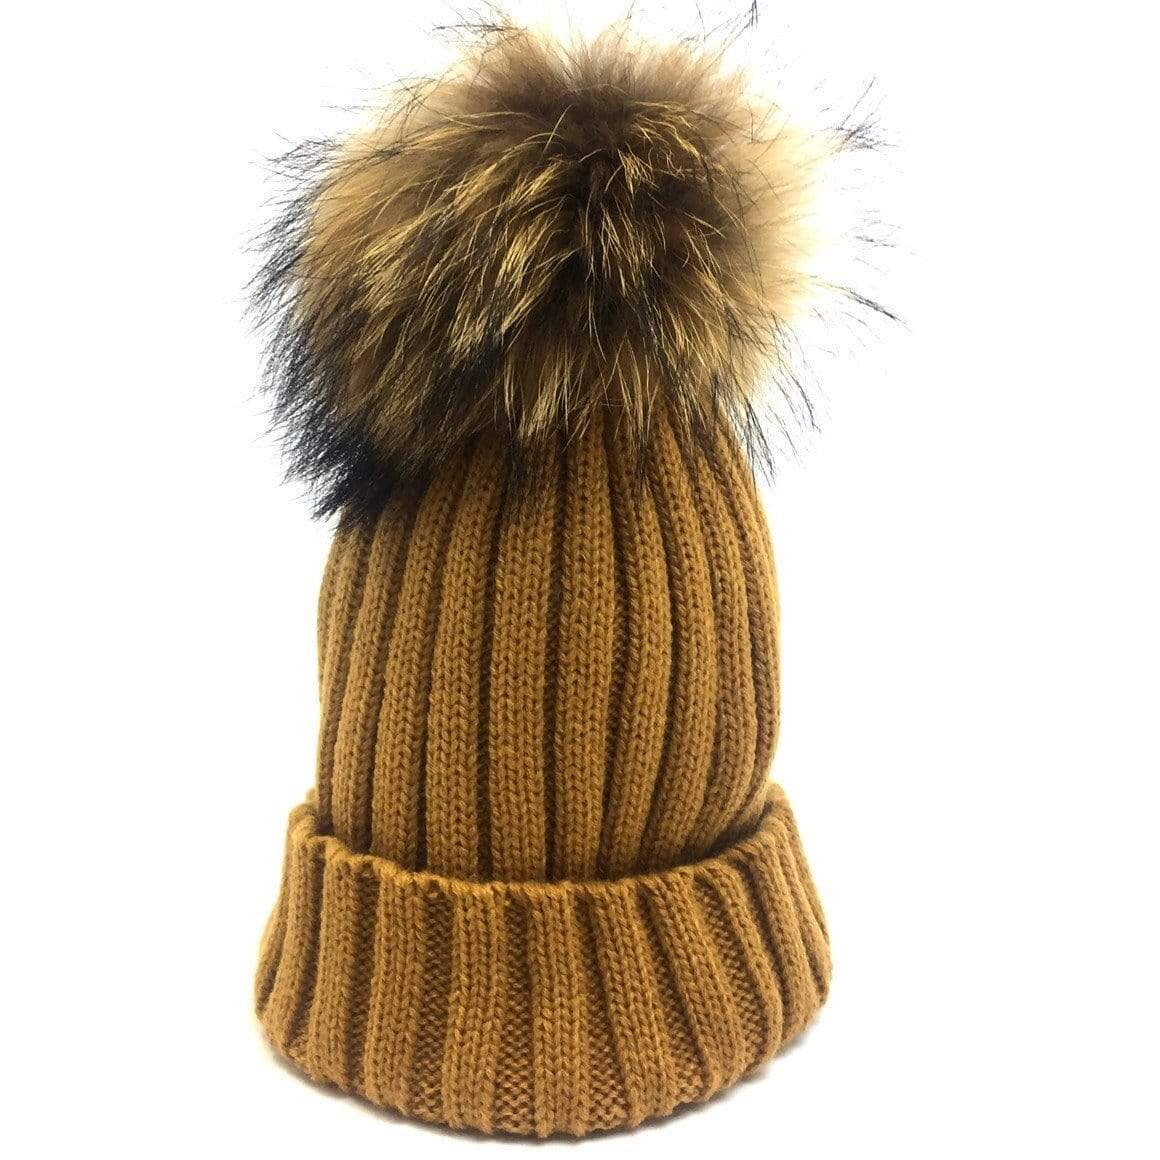 Tiny Mustard Pom Pom Hat (Baby - Adult) Winter Hat Tiny Trendsetter 0-3 Years